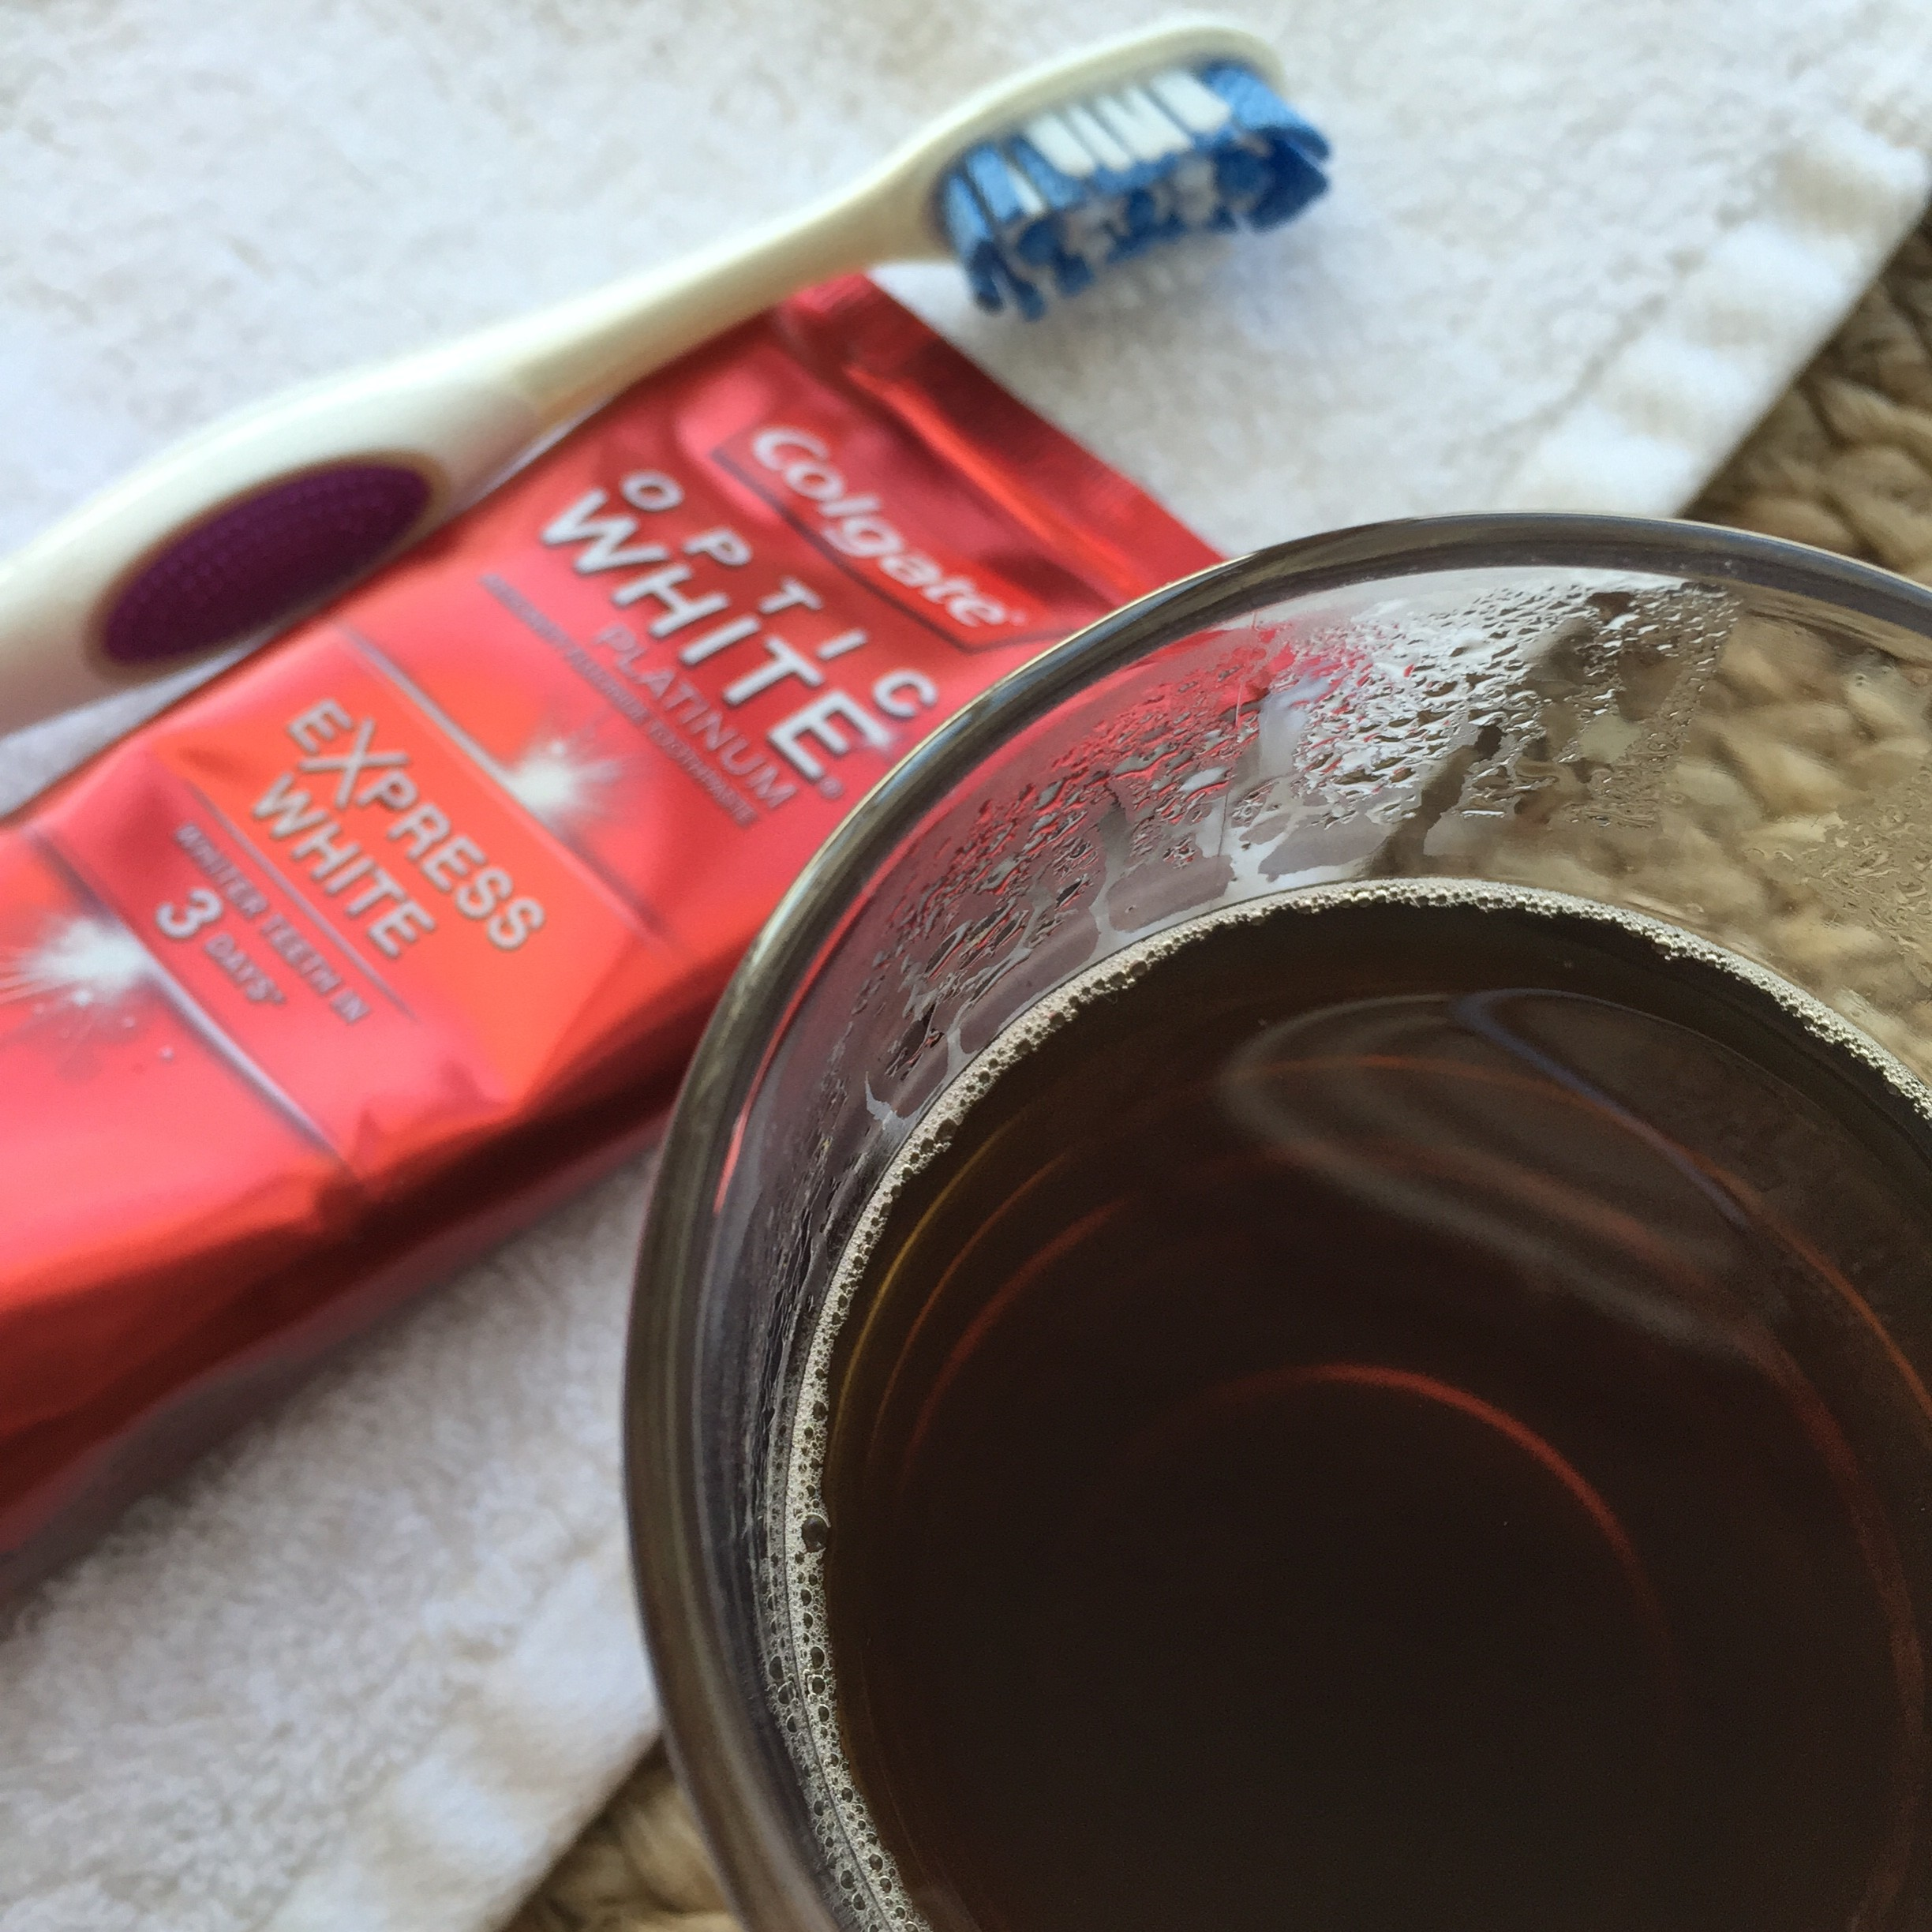 Coffee Pairing With Colgate Optic White Express White © www.roastedbeanz.com #OpticSmiles #ad #collectivebias #shop